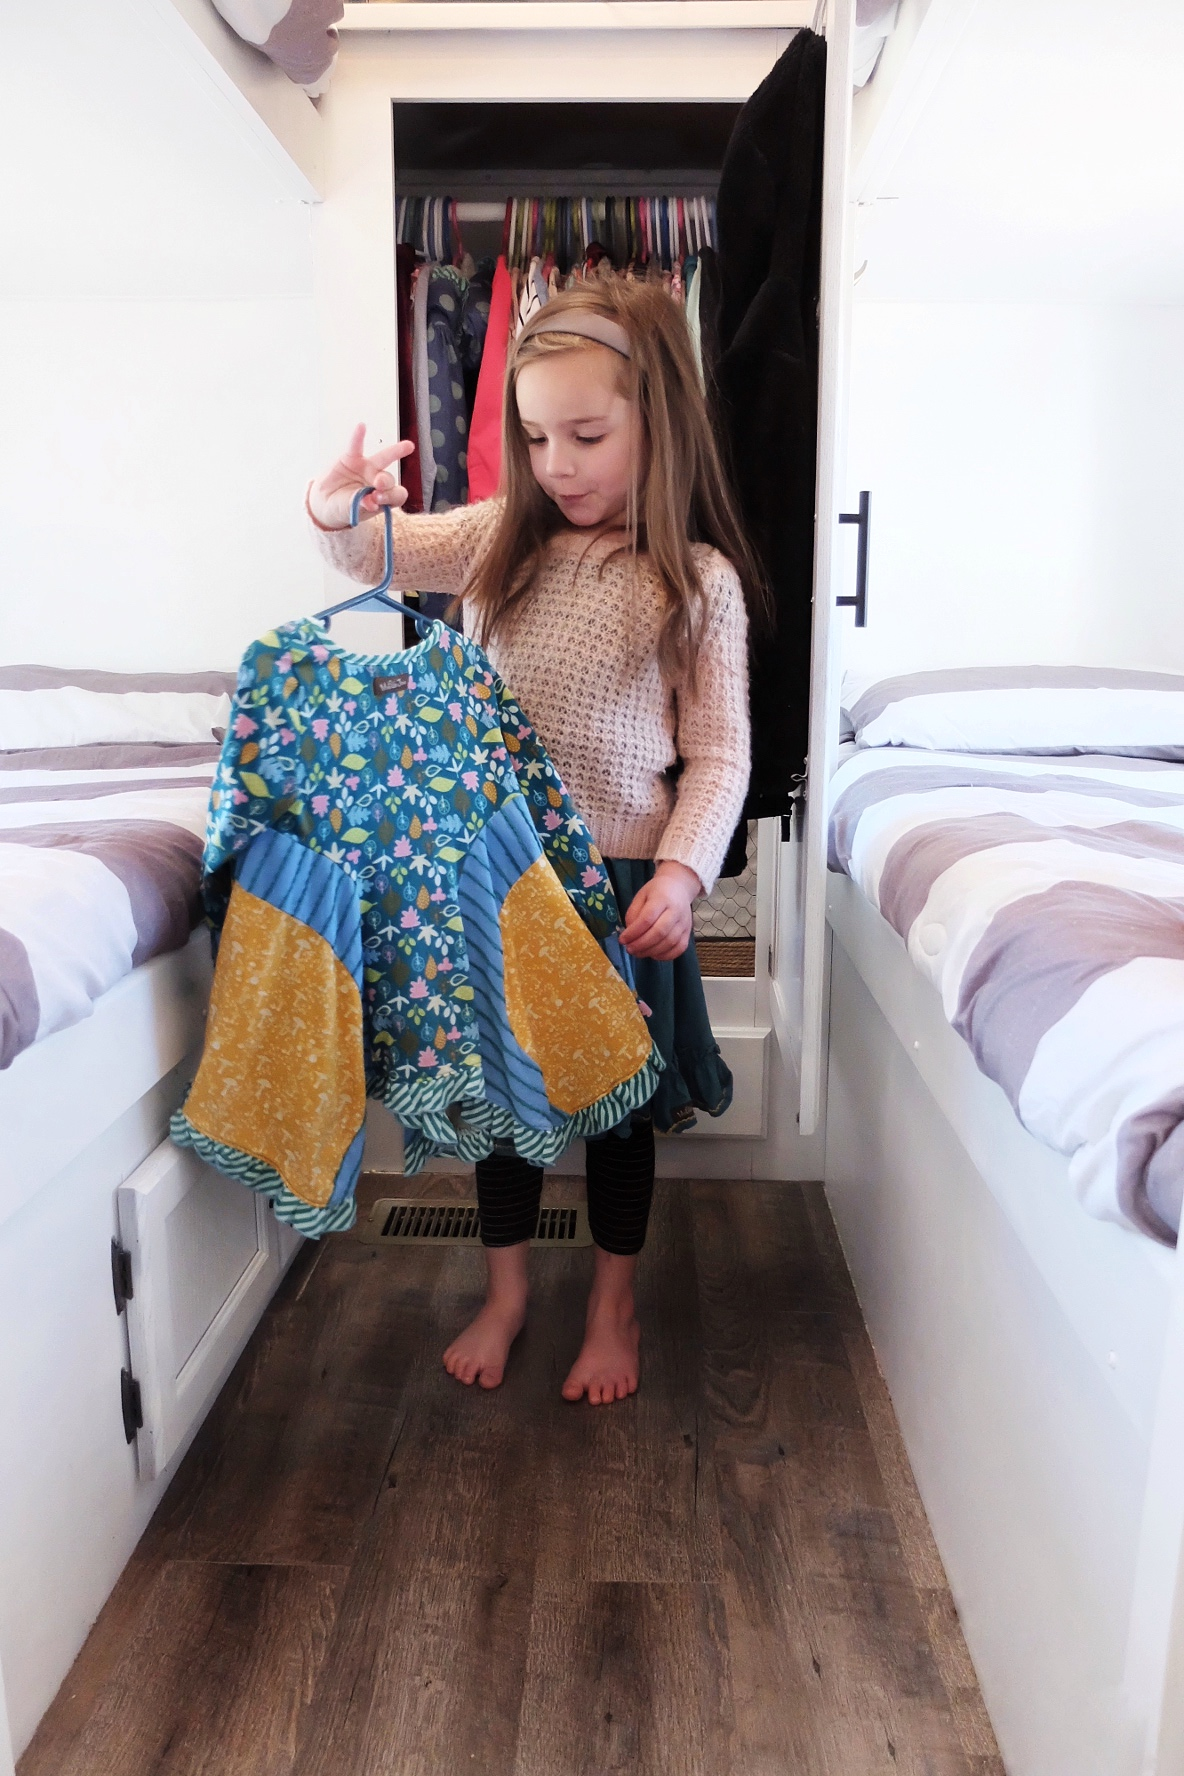 Minimizing Kids' Wardrobes for Tiny Living - …or life in generalBy Stephanie Byrnes